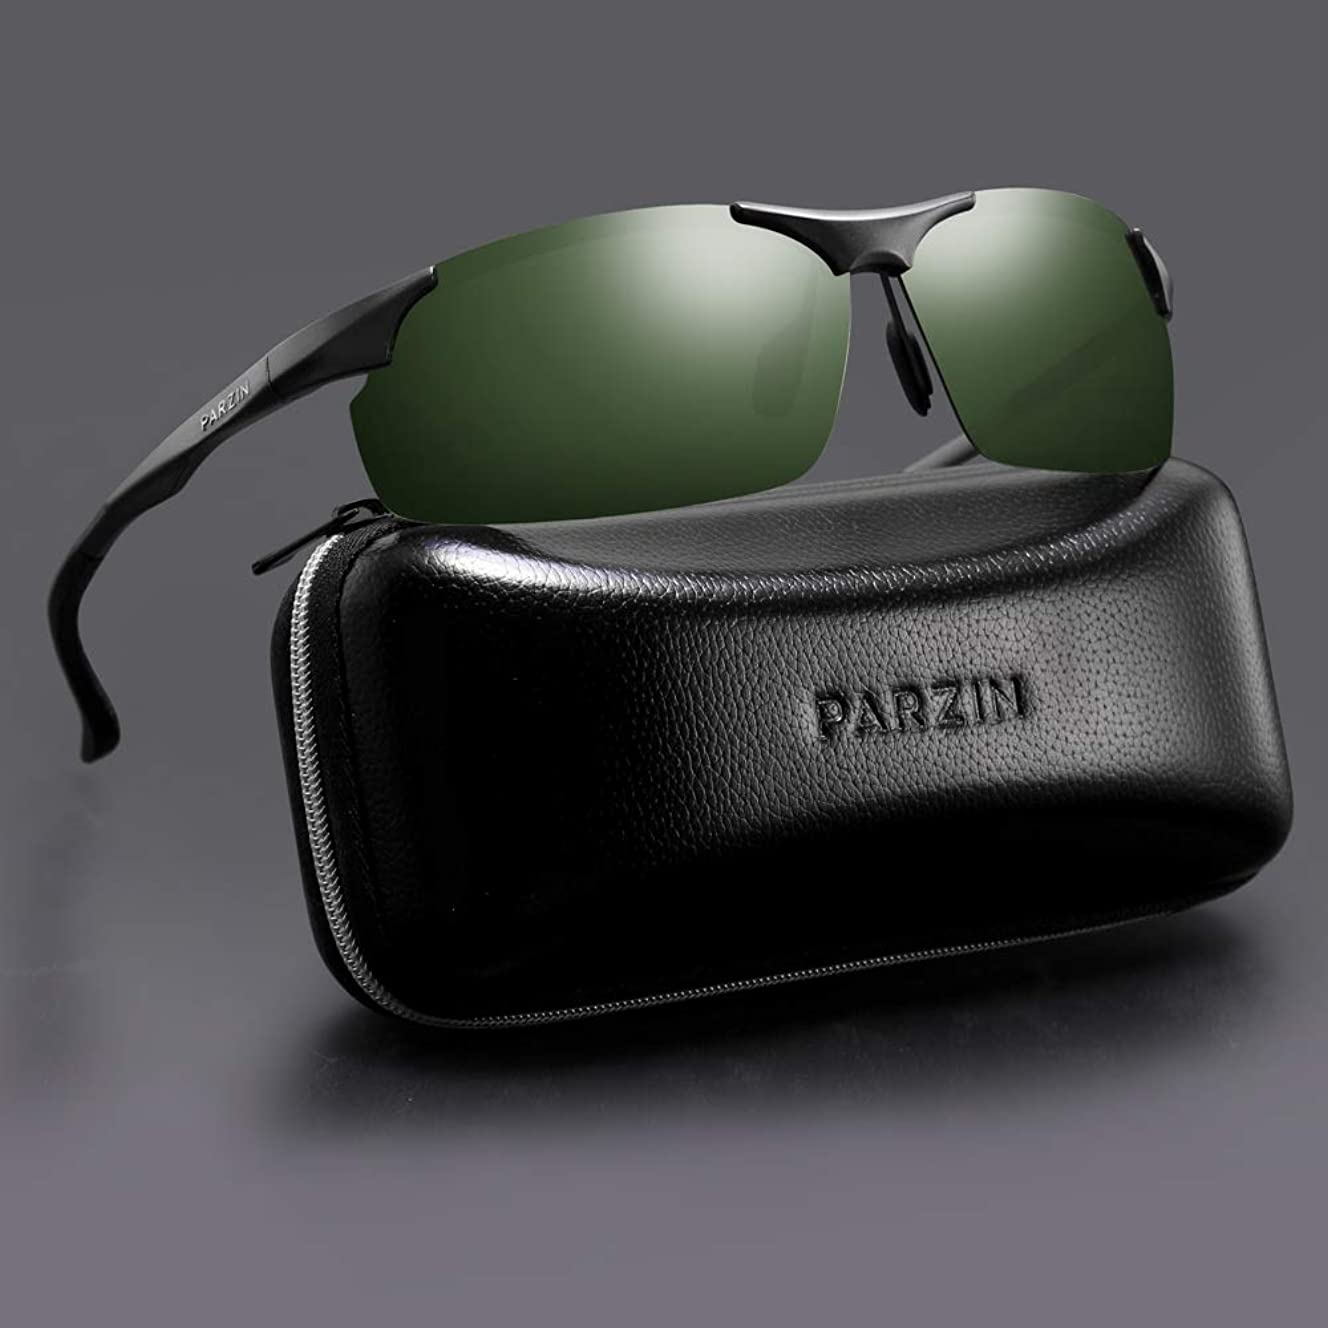 PARZIN Men Sport Sunglasses Polarized Ultra Light Goggles UV Protective for Cycling, Running, Driving, Fishing, Golf